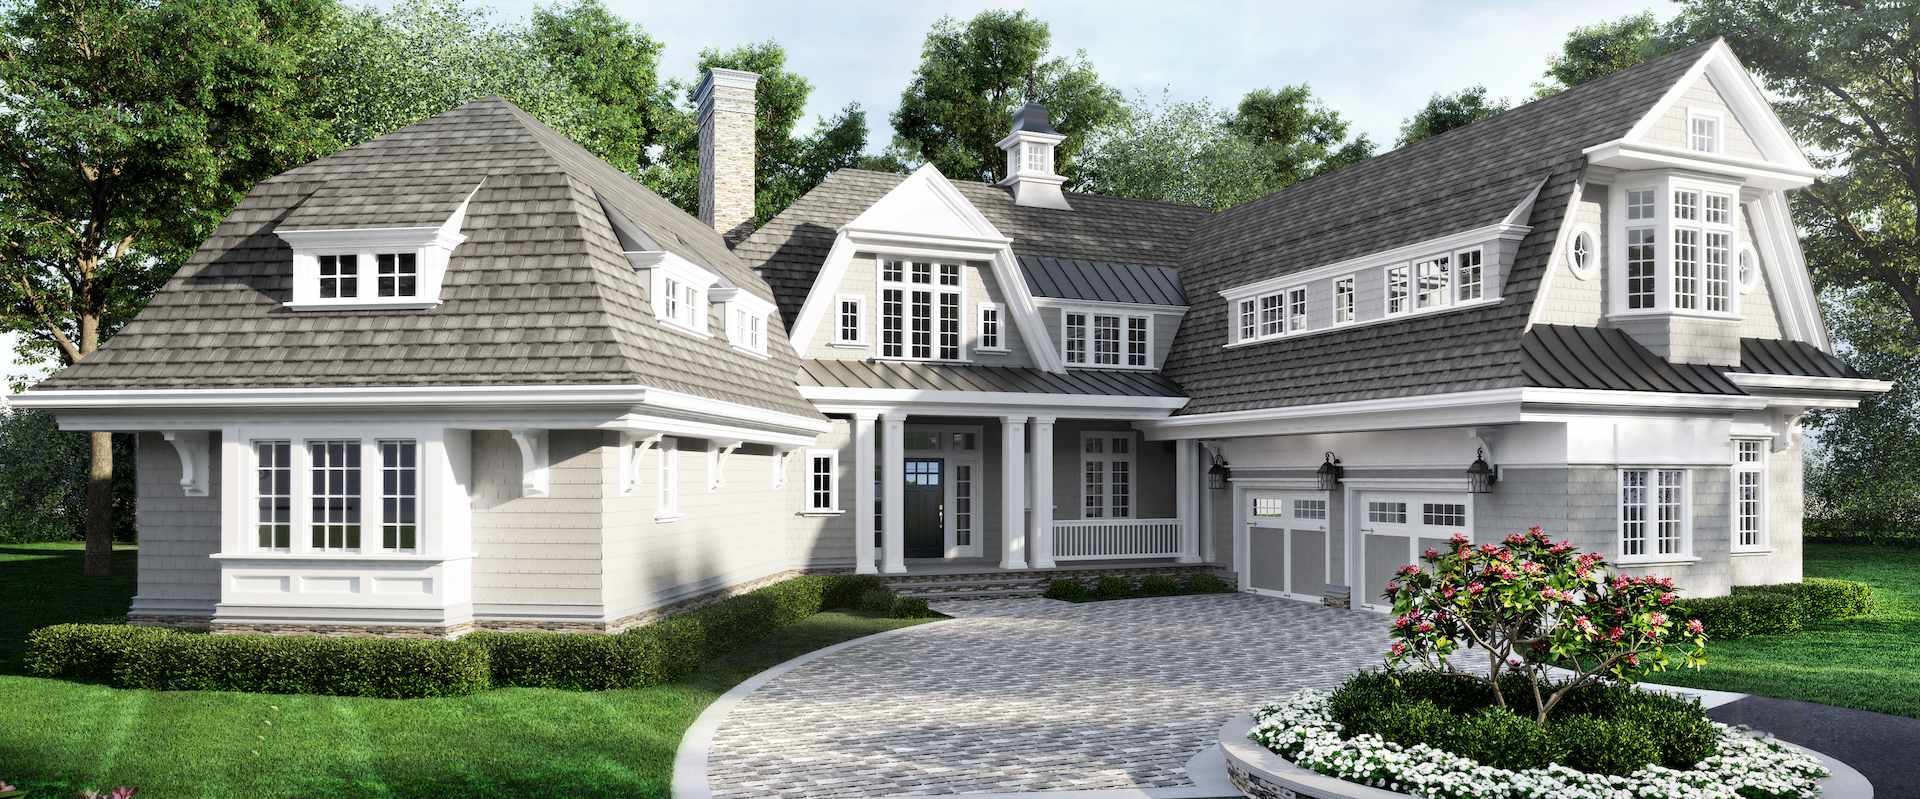 grant homes custom home builders in new jerseygrant homes